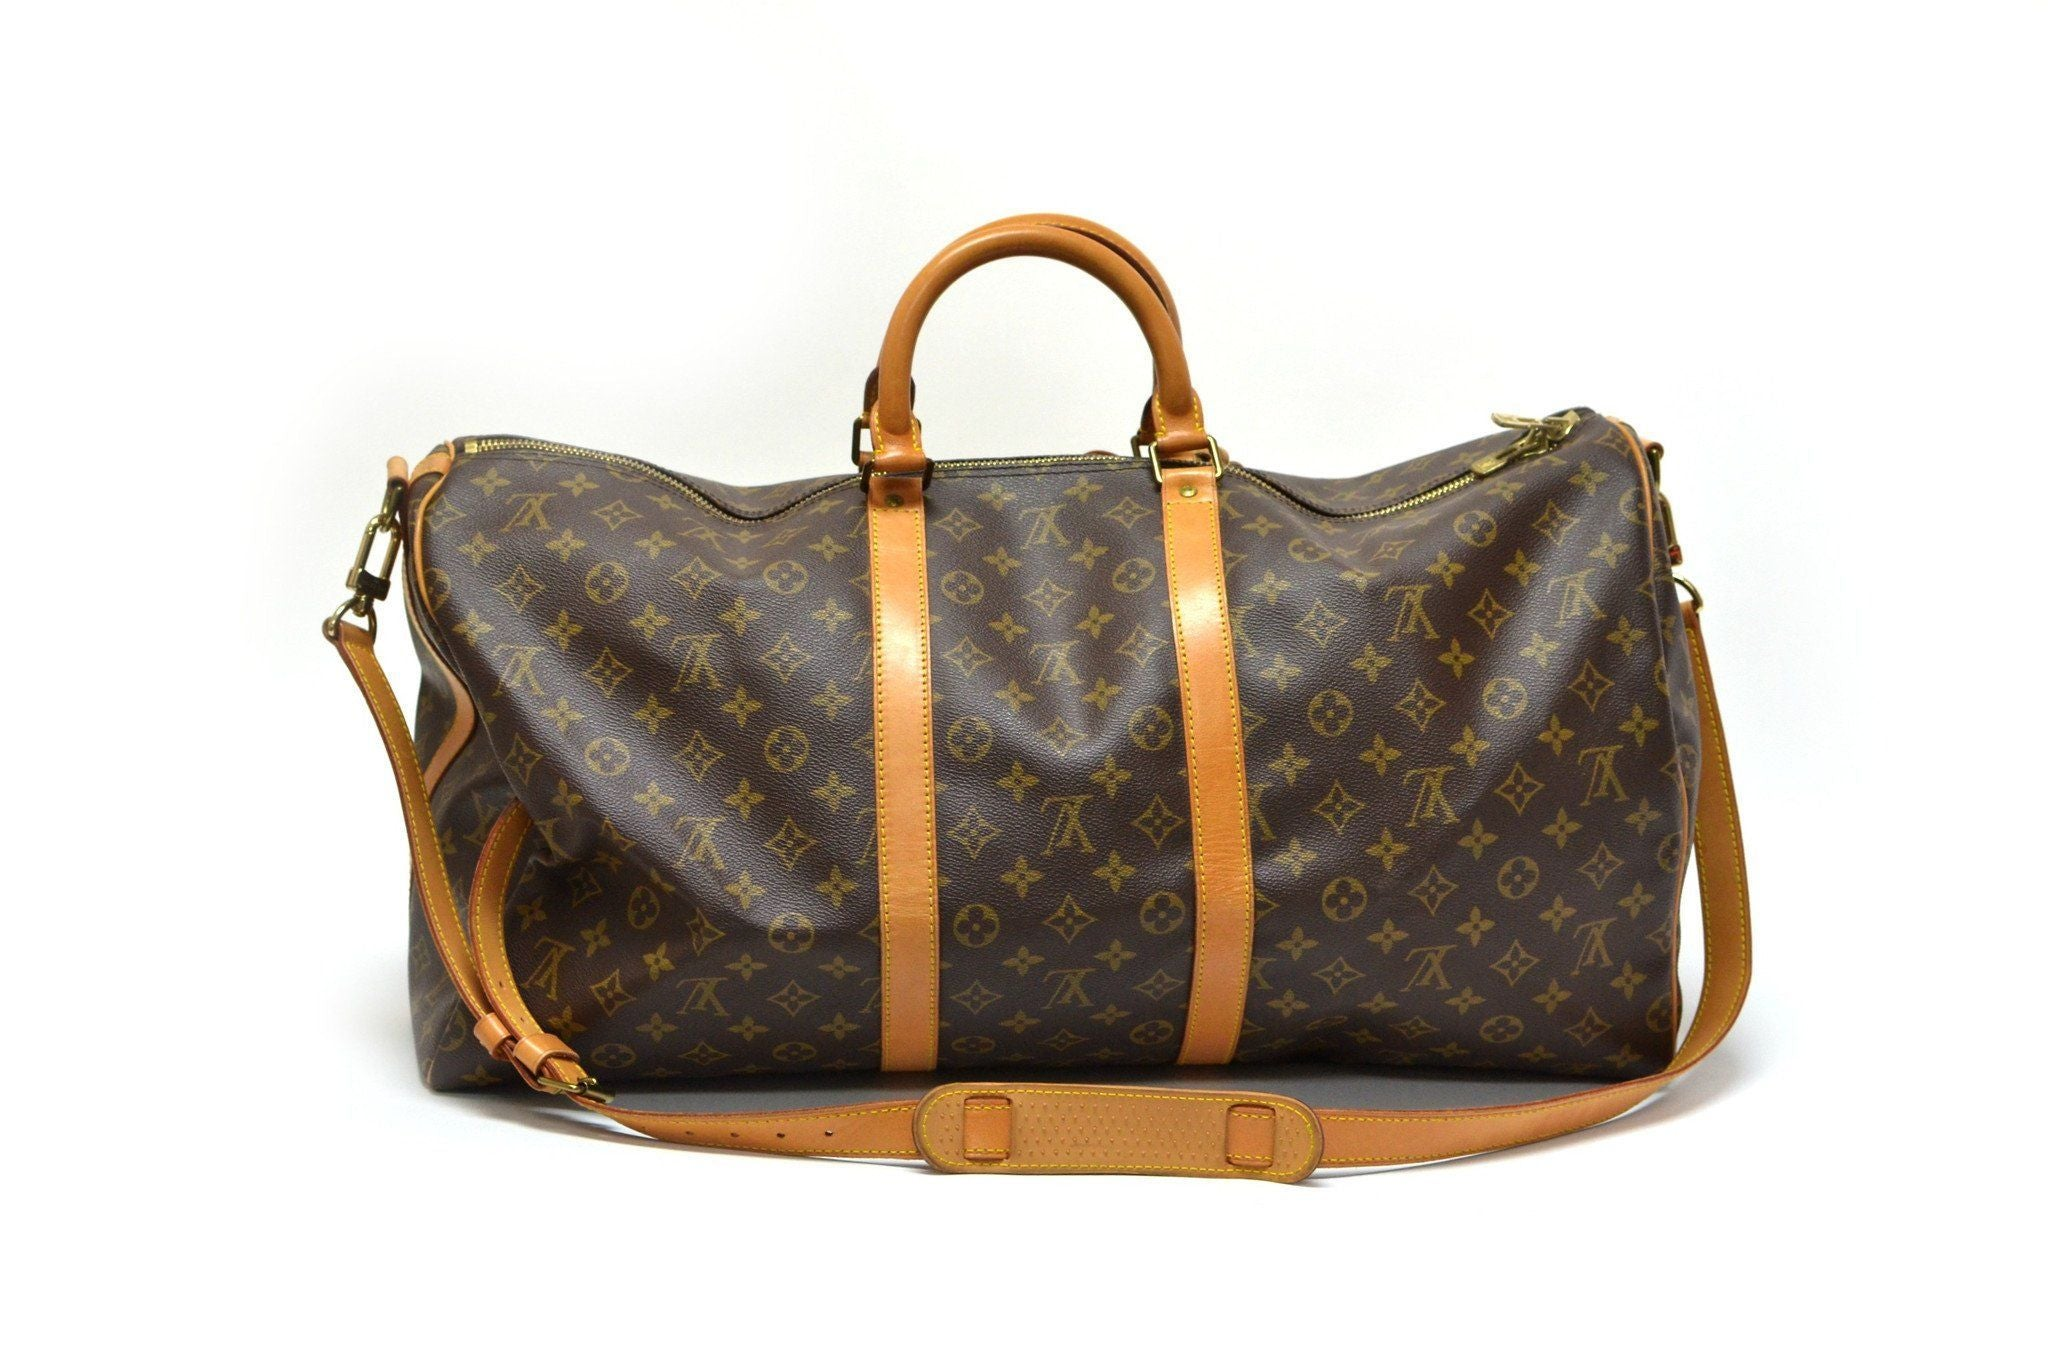 authentic vintage louis vuitton 55cm keepall bag the vintage contessa. Black Bedroom Furniture Sets. Home Design Ideas